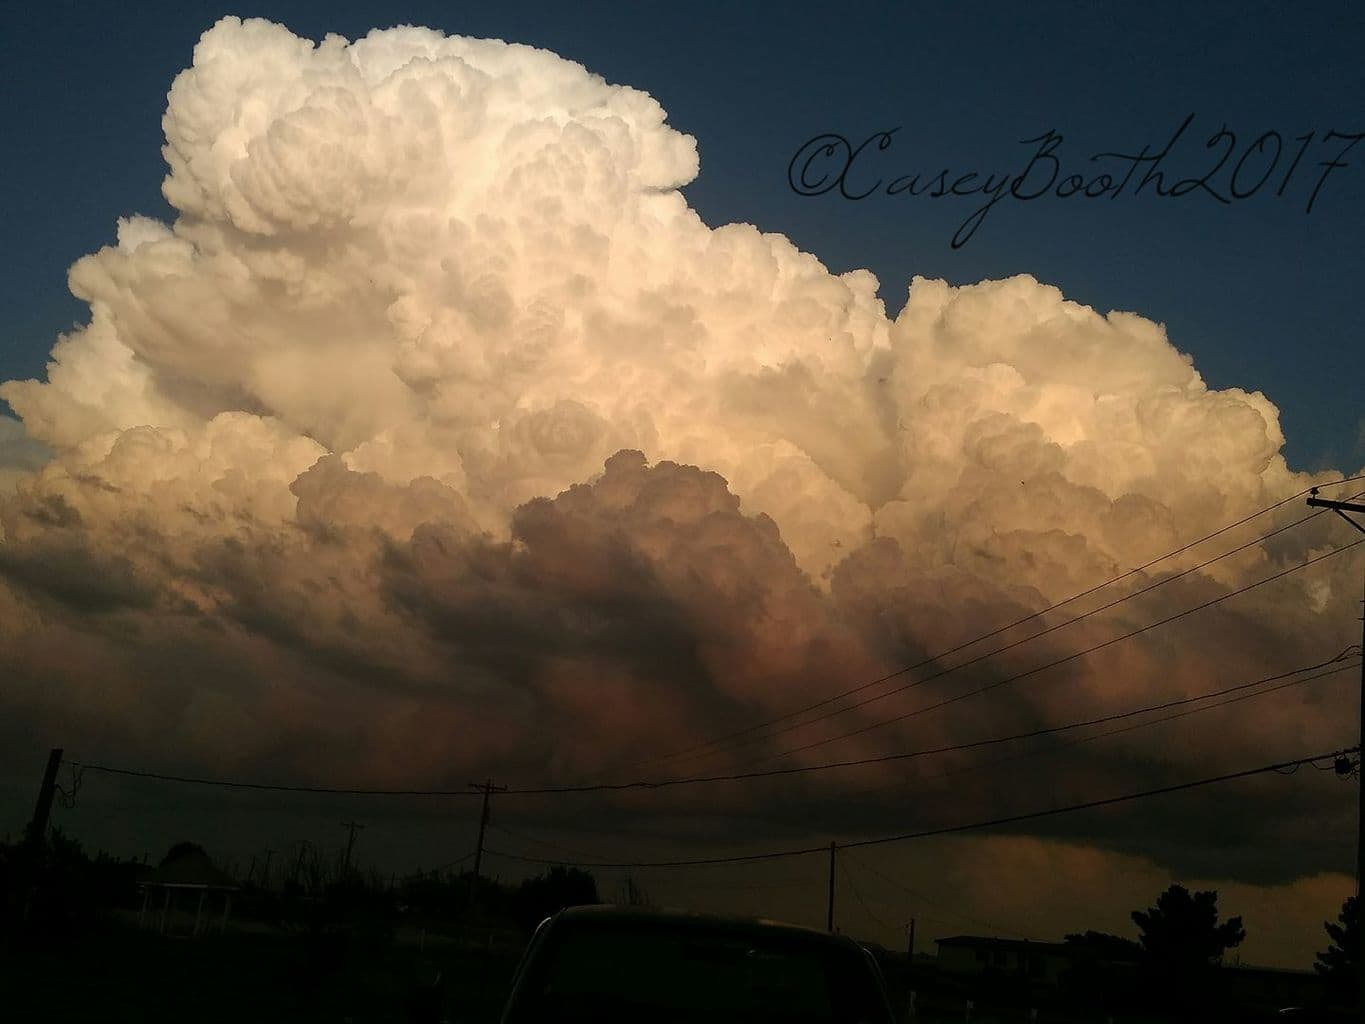 An exploding Supercell over Claude Texas taken Easter Sunday. This storm went severe warned a short time later.